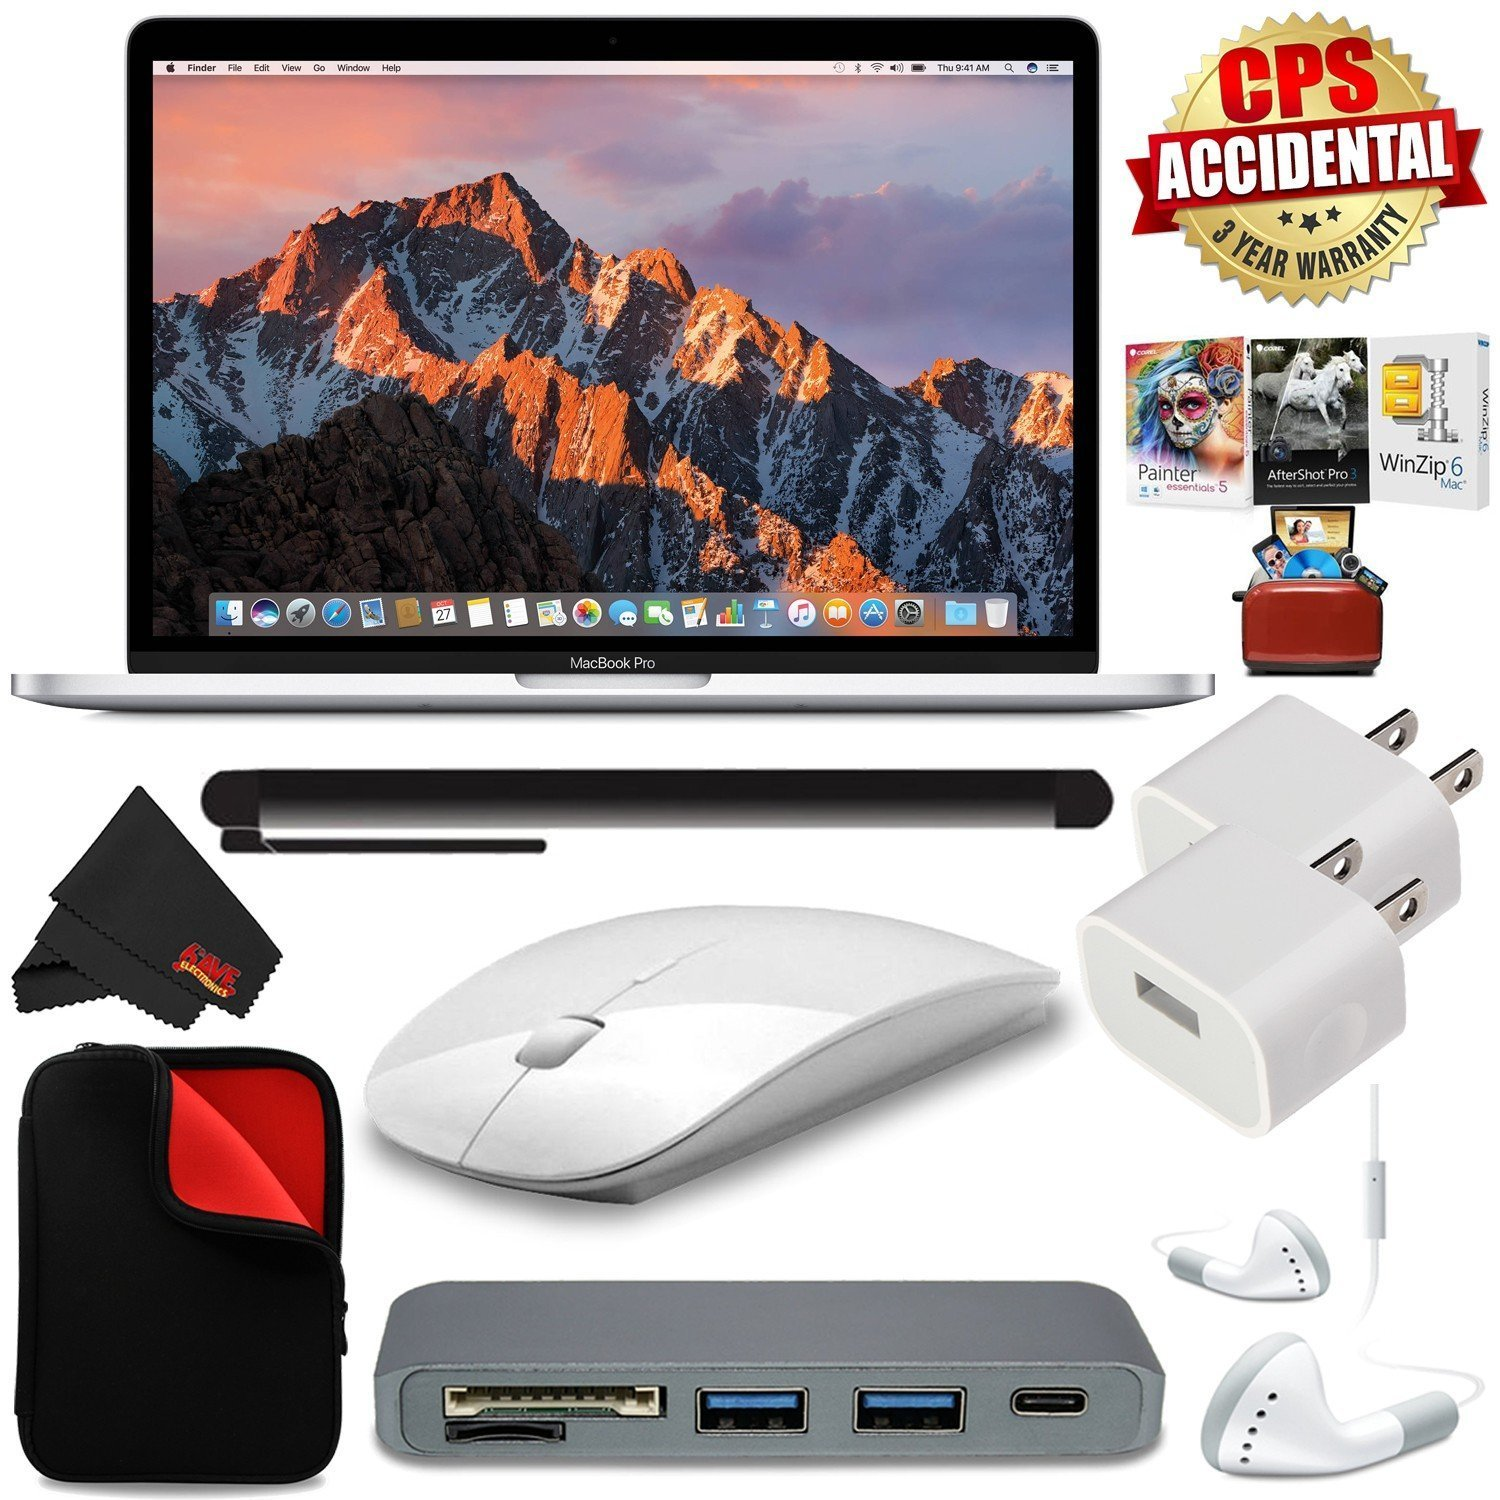 "6Ave Apple 13"" MacBook Pro, Retina, Touch Bar, 3.1GHz Intel Core i5 Dual Core (MPXY2LL/A) + Universal Stylus for Tablets + Padded Case For Macbook + Type-C USB 3.0 HUB Bundle"